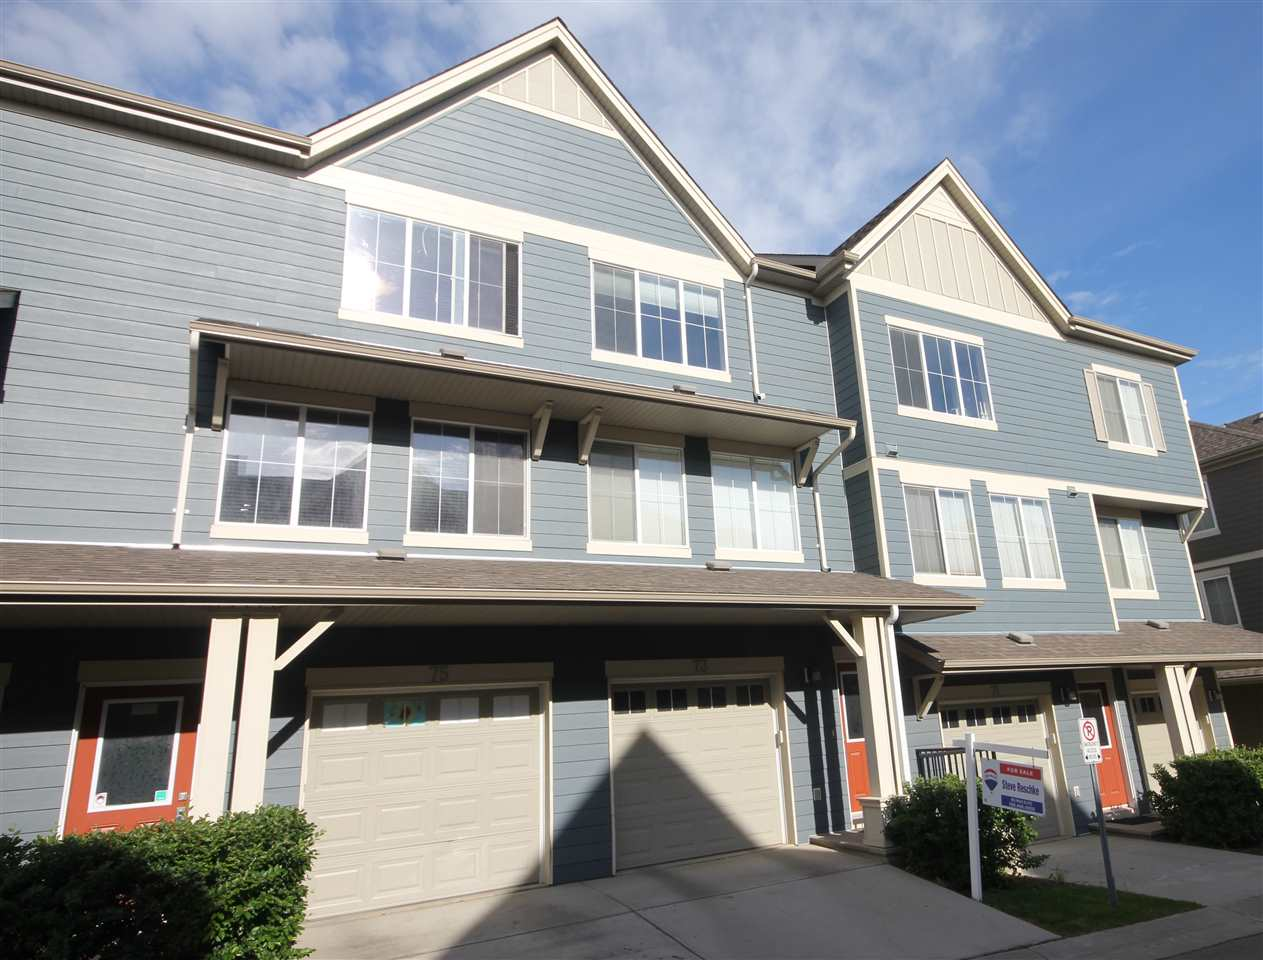 MLS® listing #E4159843 for sale located at 73 603 WATT Boulevard